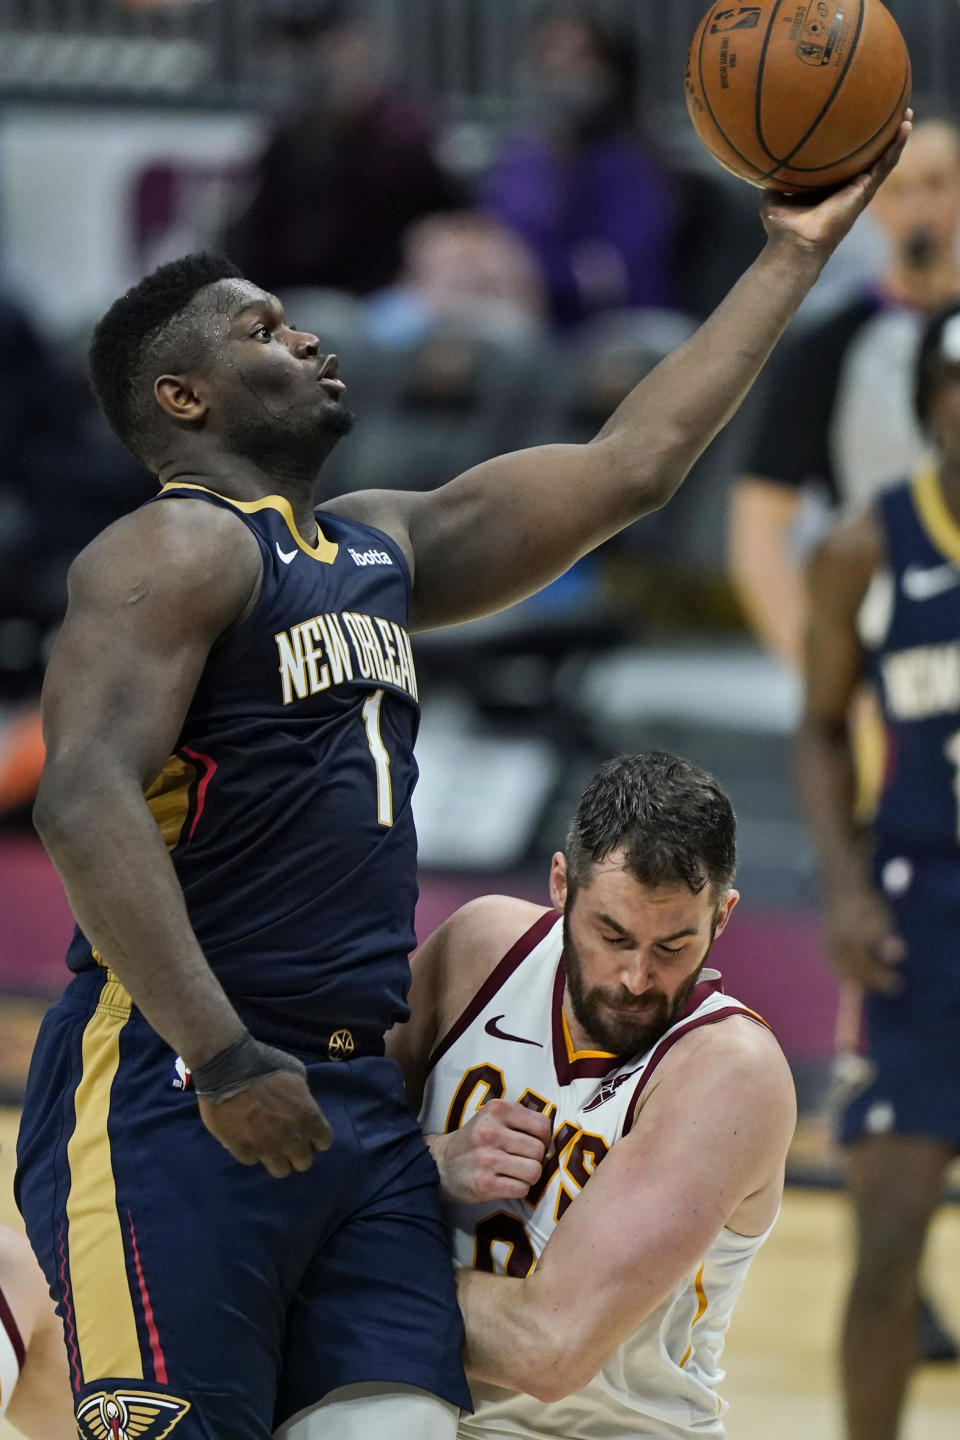 New Orleans Pelicans' Zion Williamson, left, drives to the basket against Cleveland Cavaliers' Kevin Love in the second half of an NBA basketball game, Sunday, April 11, 2021, in Cleveland. (AP Photo/Tony Dejak)